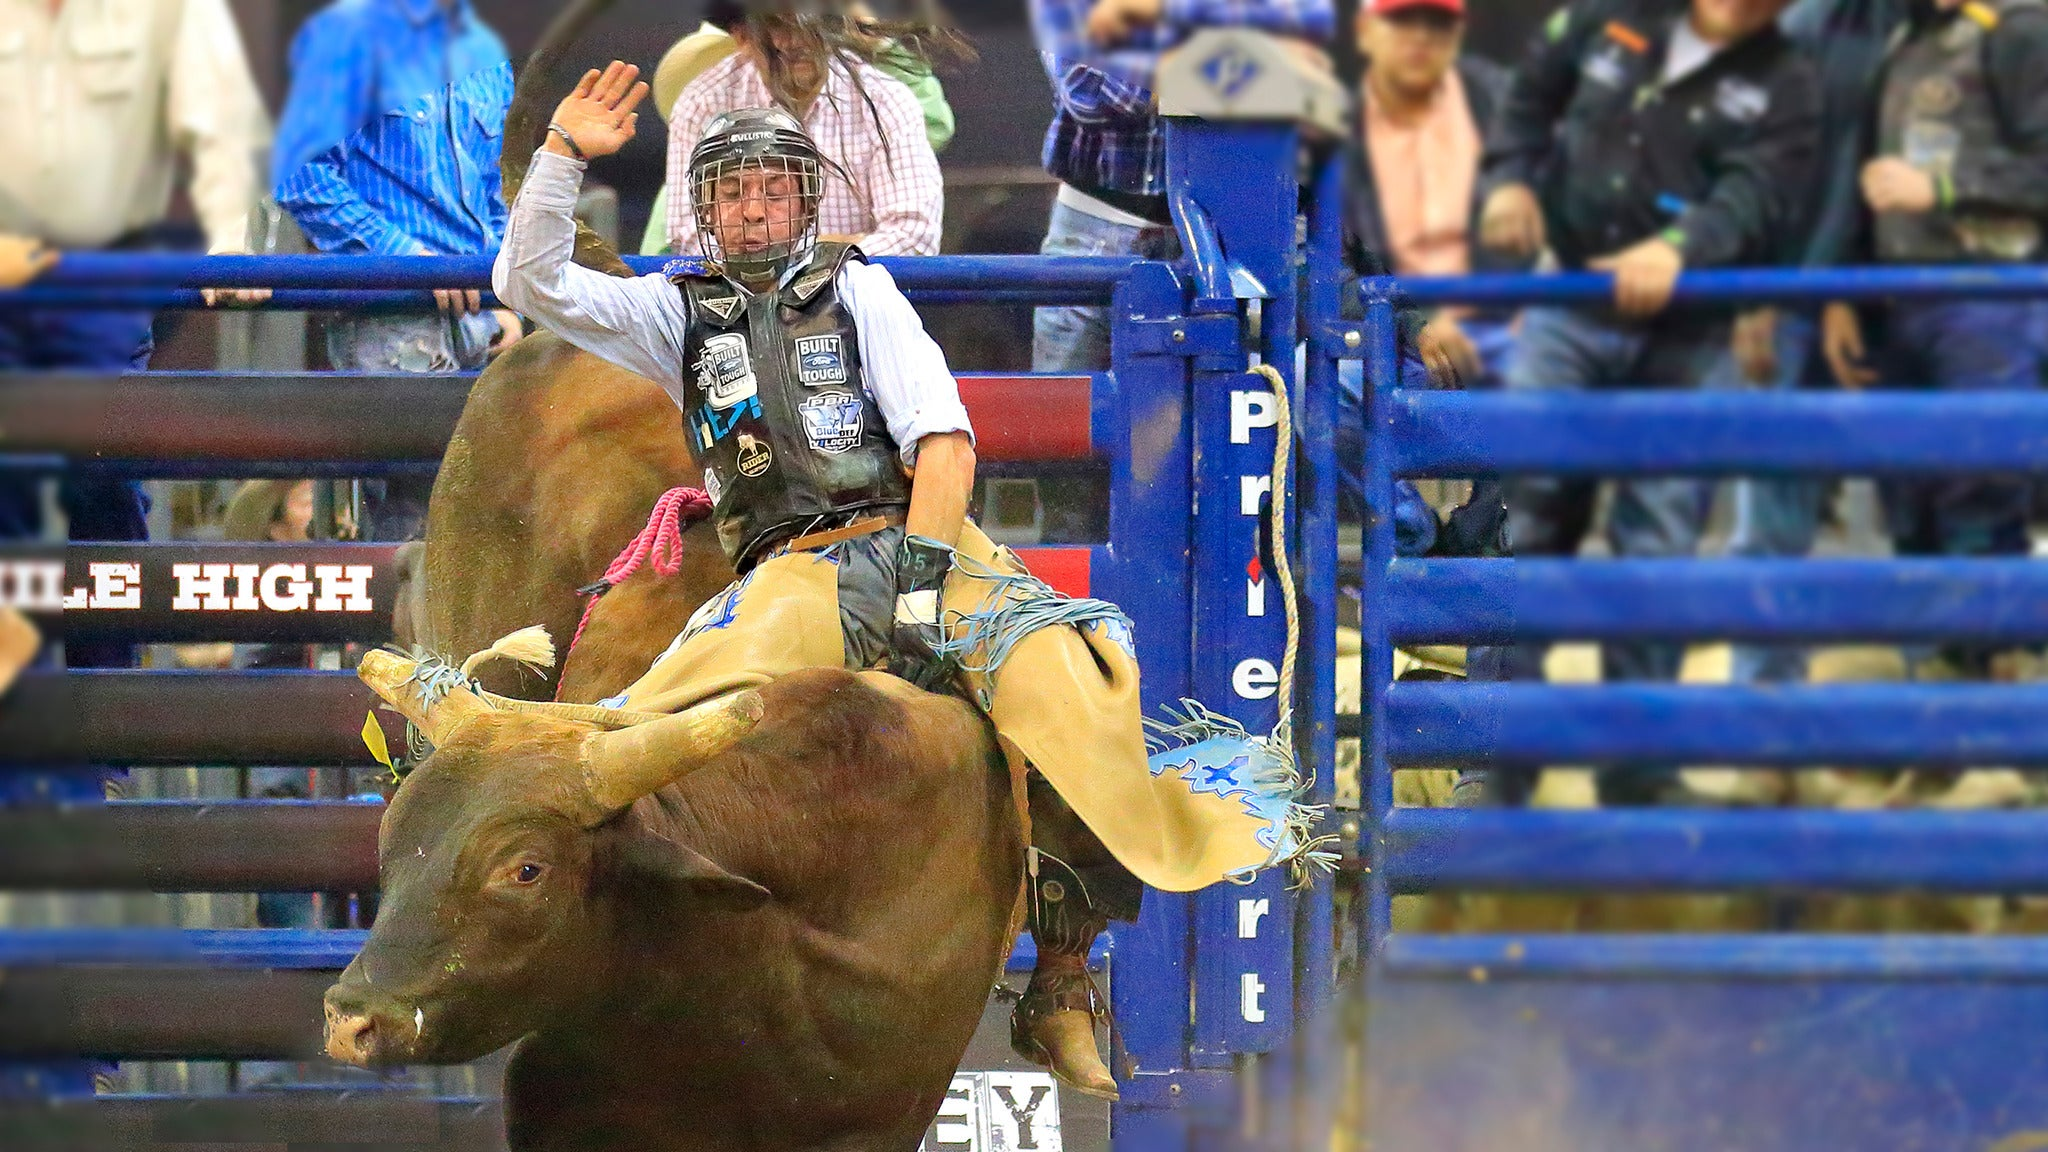 Mile High PBR at Findlay Toyota Center